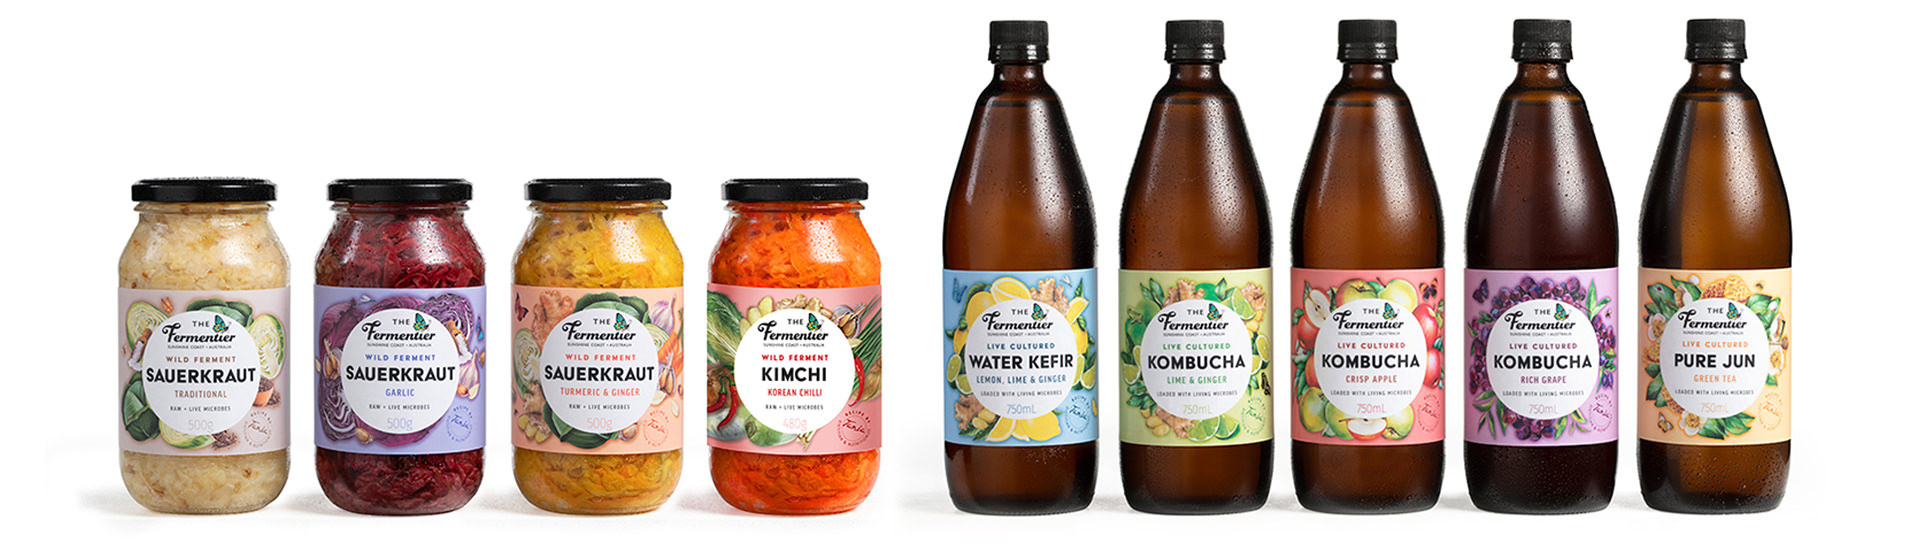 The-Fermentier-jars-bottles-products